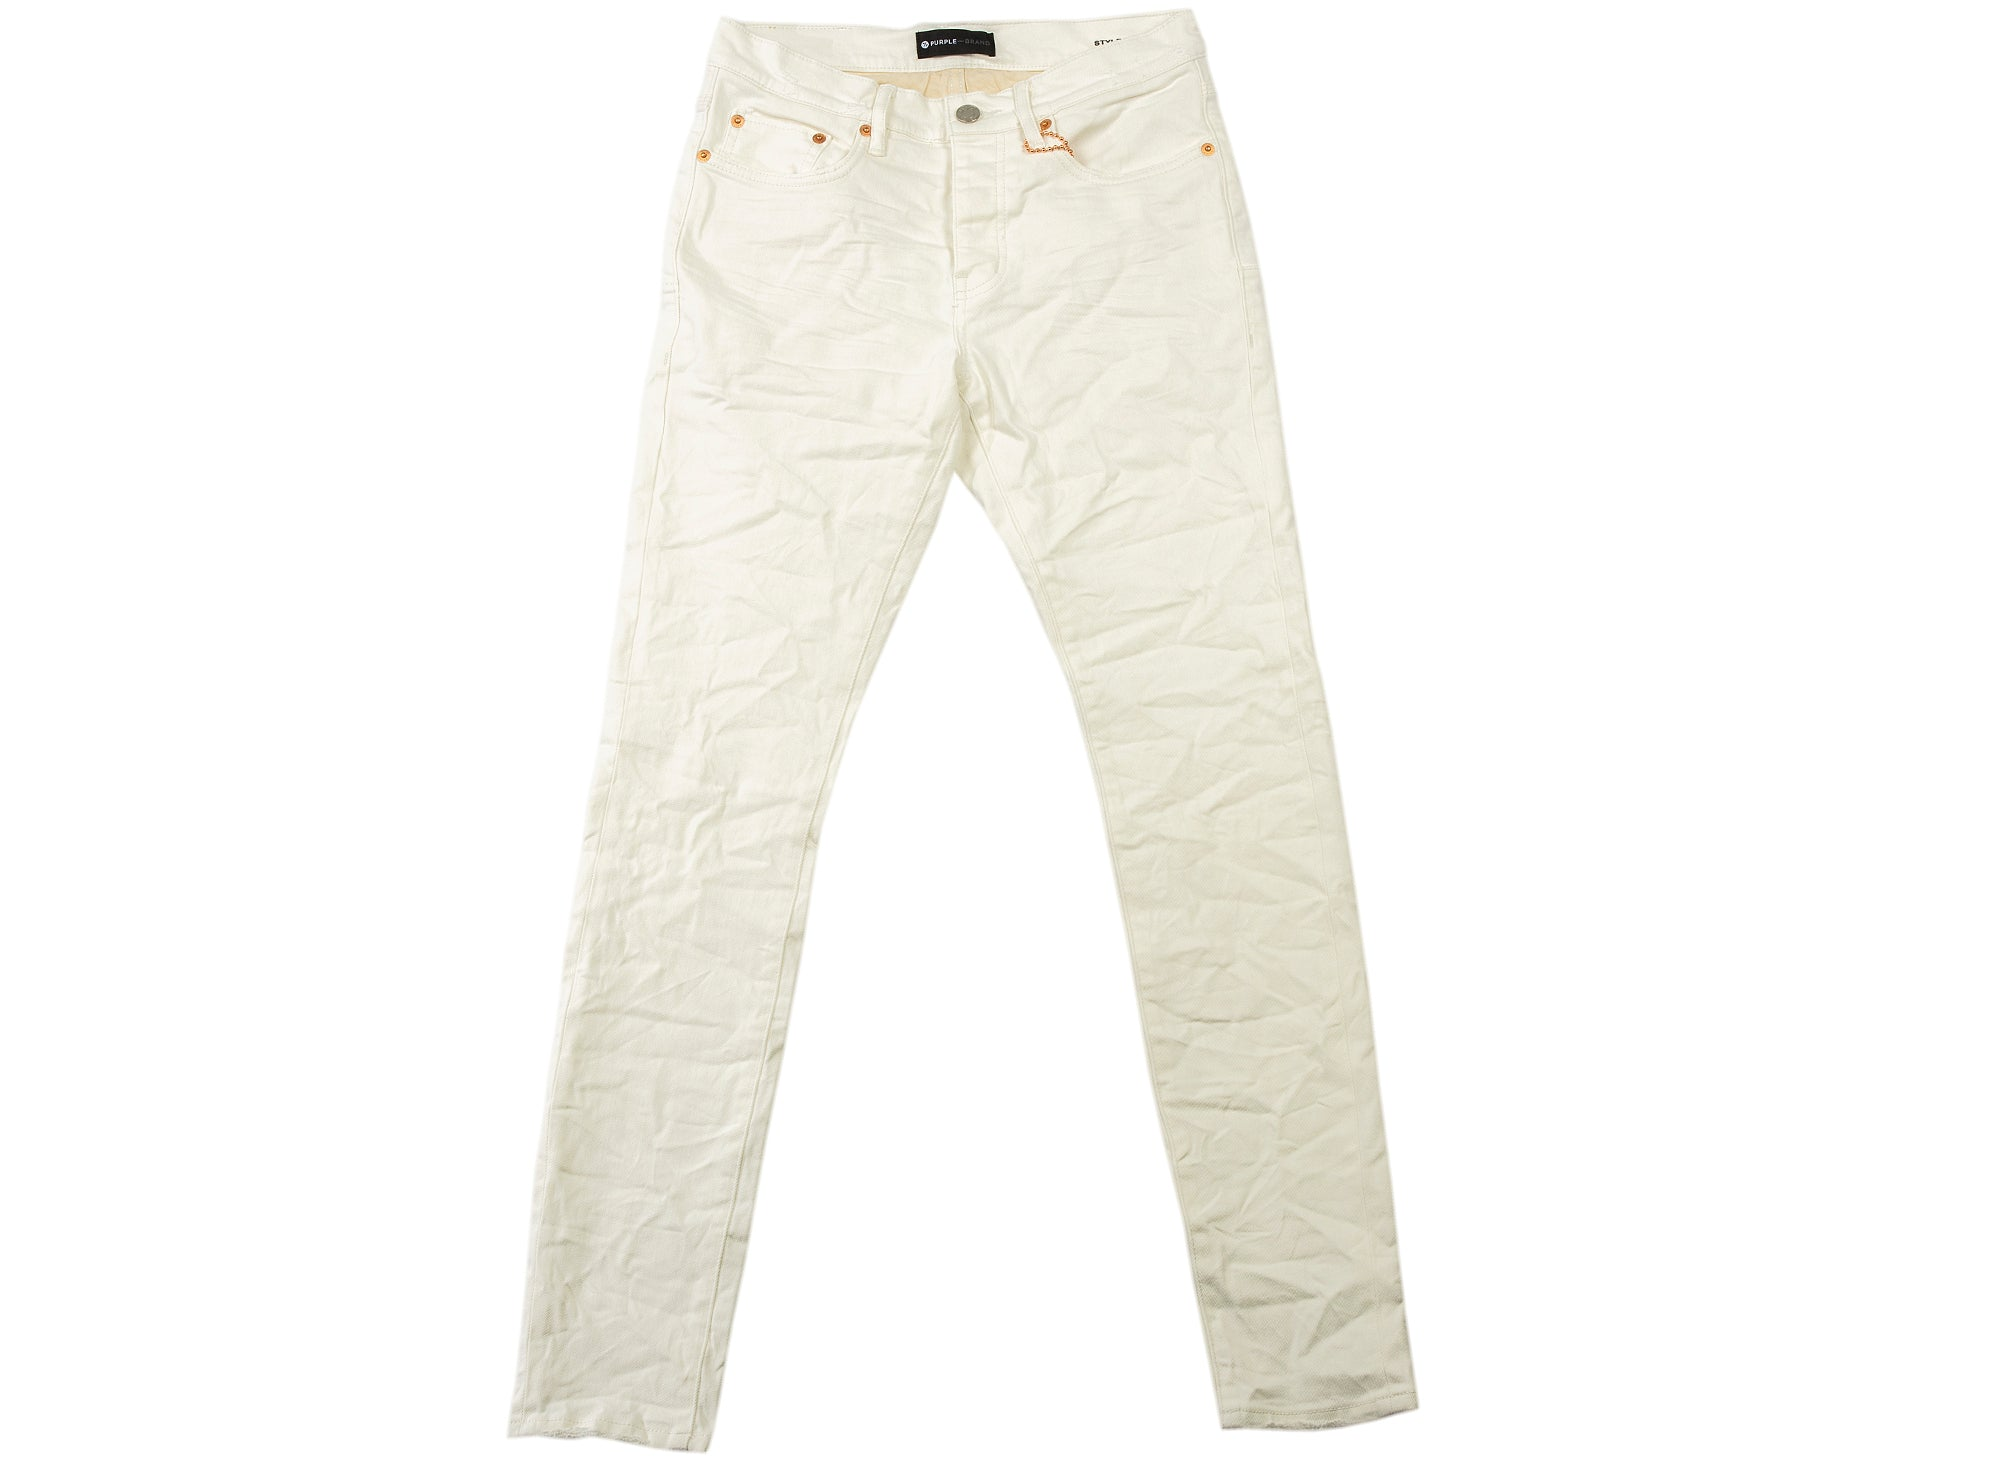 Purple Brand Low Rise Slim Leg White Washed Jeans xld